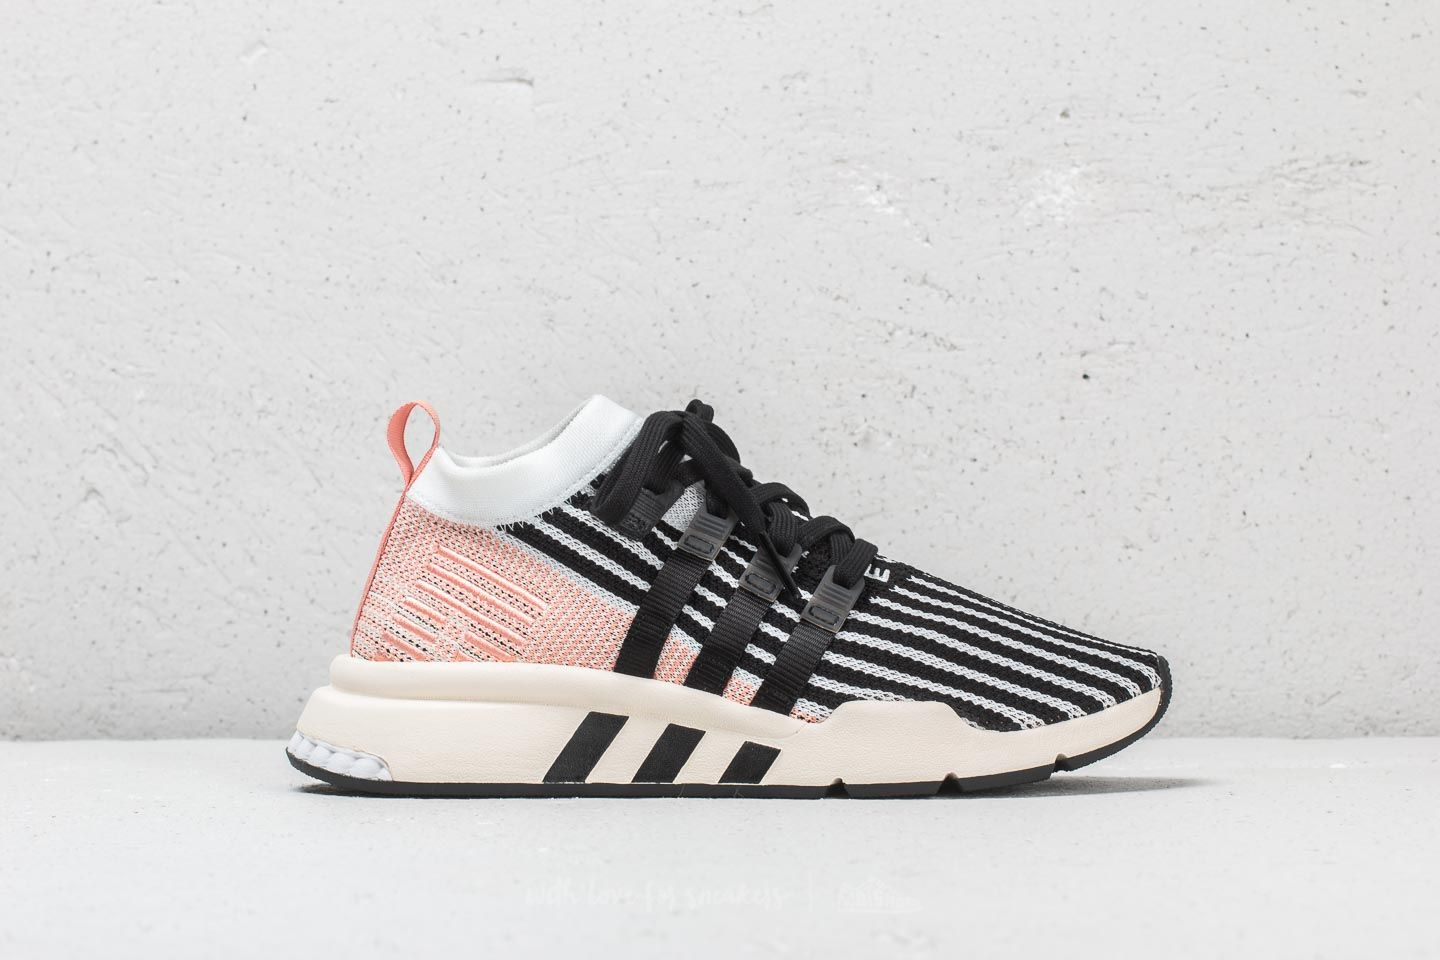 Adidas EQT Support Mid ADV PK Cloud White  Core Black  Trace Pink at a 3c449e008b4a